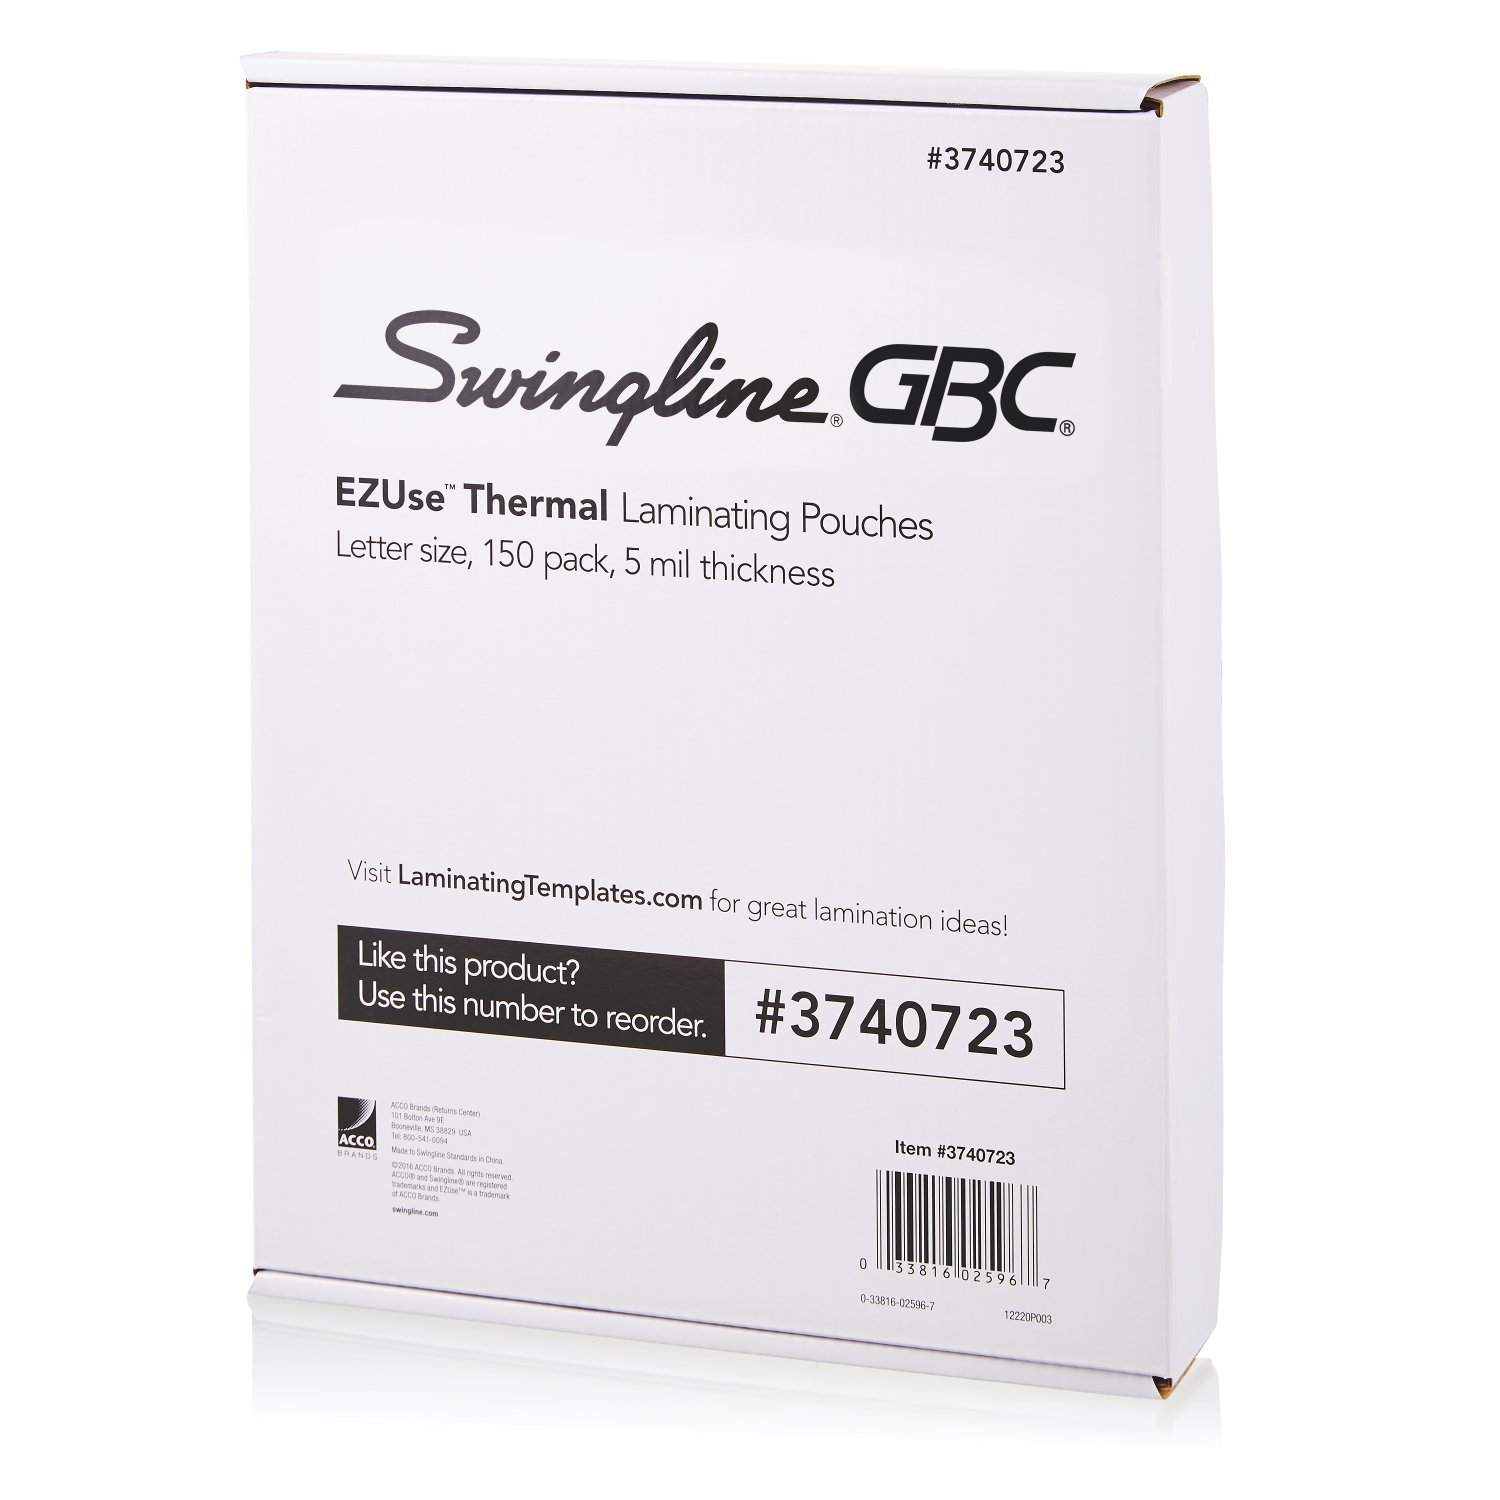 (150-Count, 1 Pack, Letter) - Swingline GBC Thermal Laminating Sheets/Pouches, Letter Size, 5 Mil, EZUse, 150-Count (3740723) 150-Count, 1 Pack  B06XHJSGPH